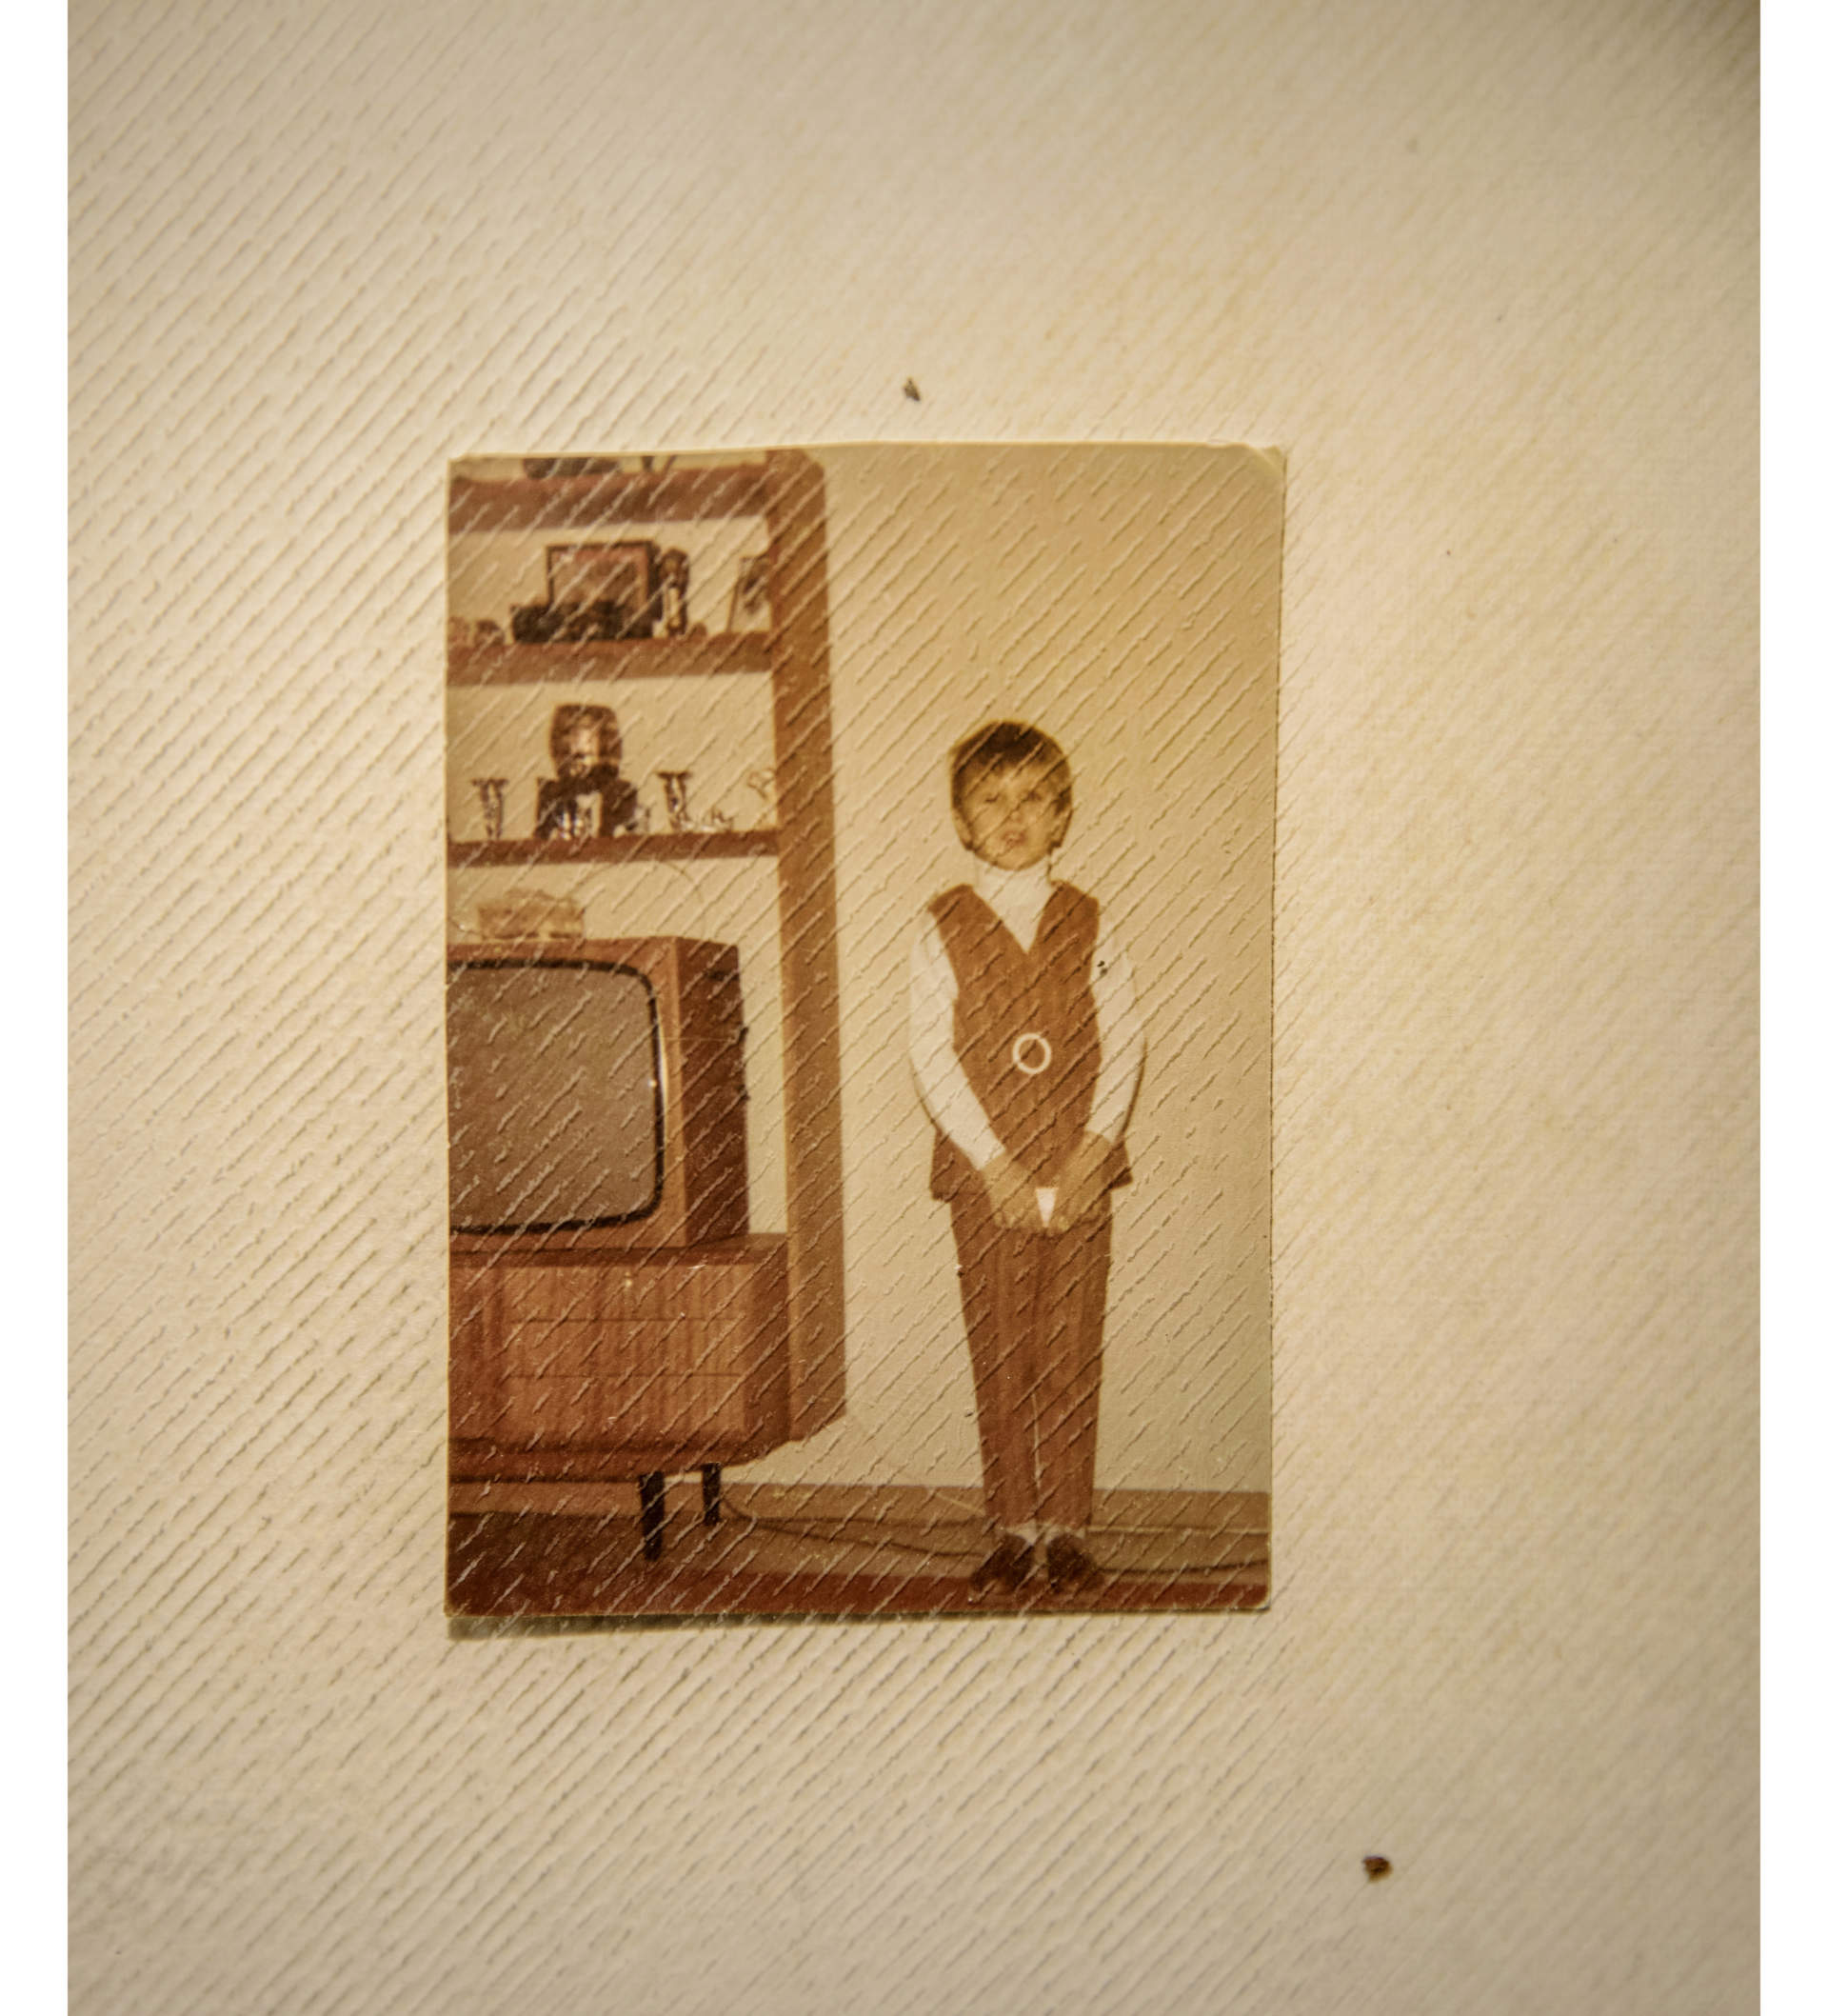 Image of a young Pekka in his childhood home.